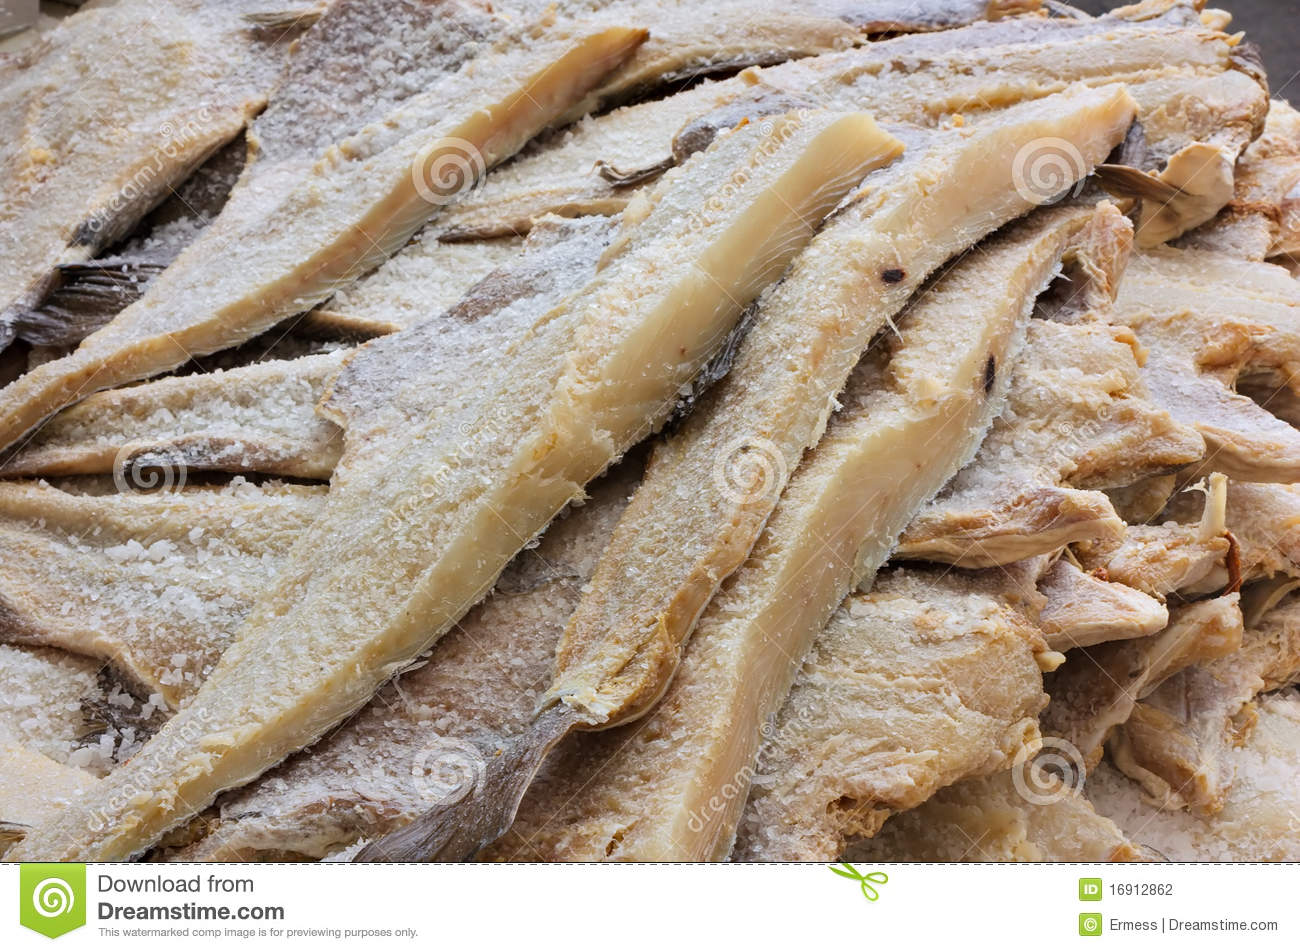 Dried salted cod stock photography image 16912862 for Where to buy salted cod fish